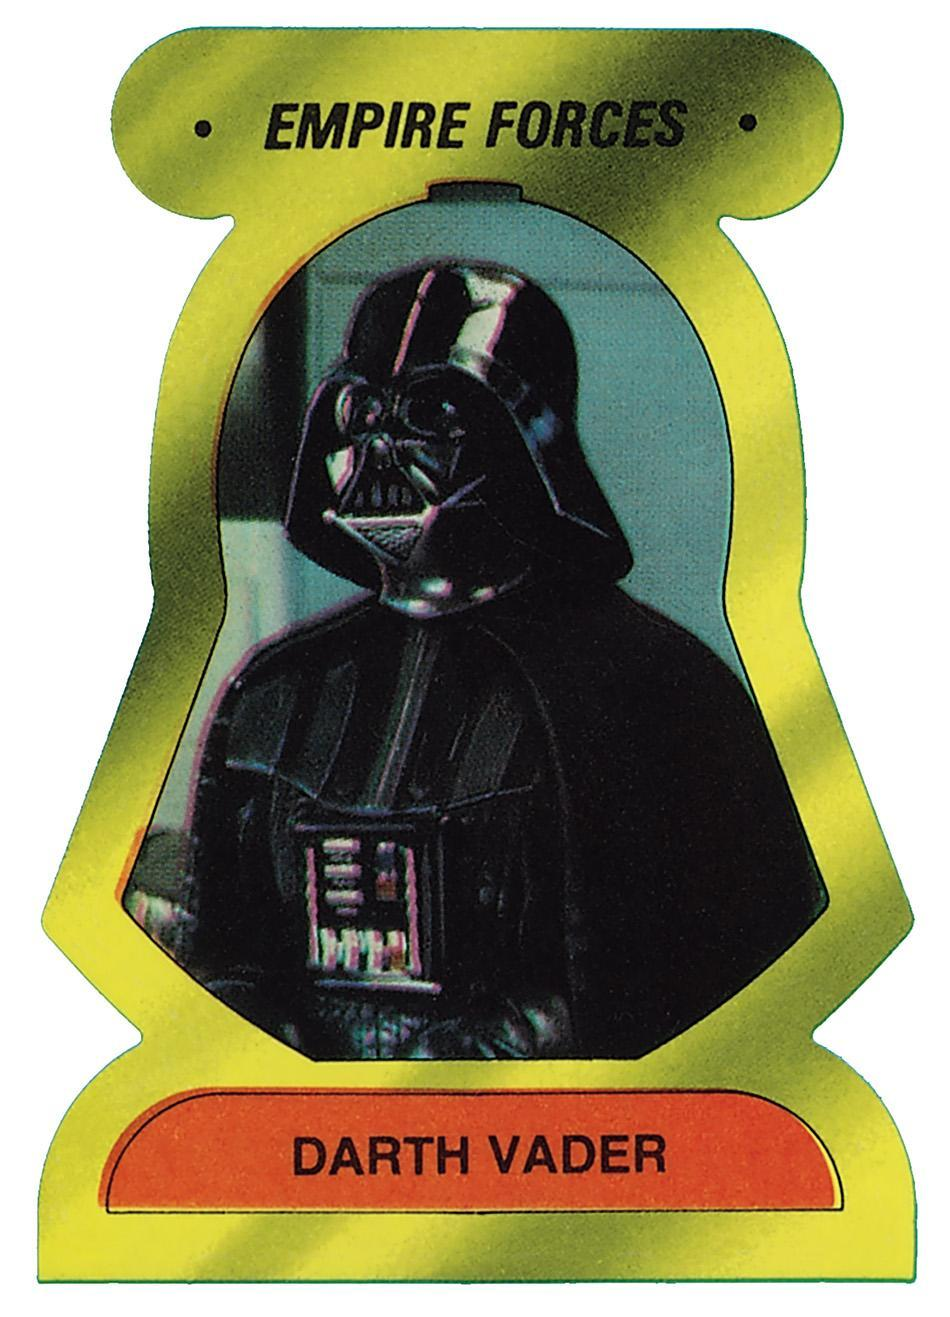 <p>For <em>The E</em><i>mpire Strikes Back</i>, Topps released stickers shaped like the dark lord's helmet. (Credit: The Topps Company and Lucasfilm Ltd (C) Abrams Books) </p>